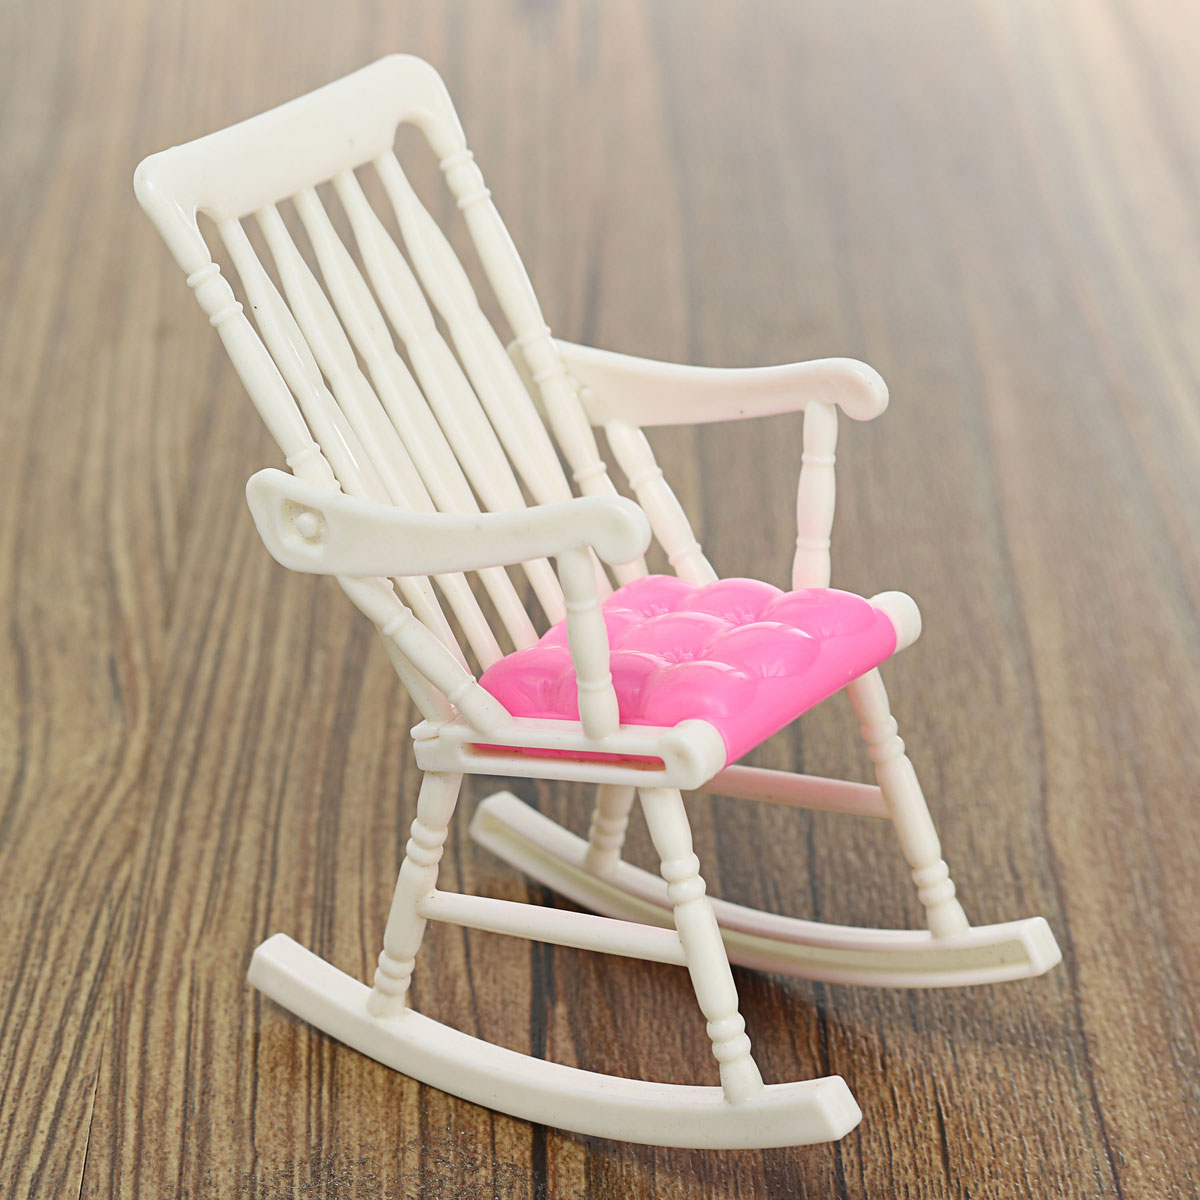 Miniature Doll Rocking Chair Accessories For Doll House Room Dollhouse ...